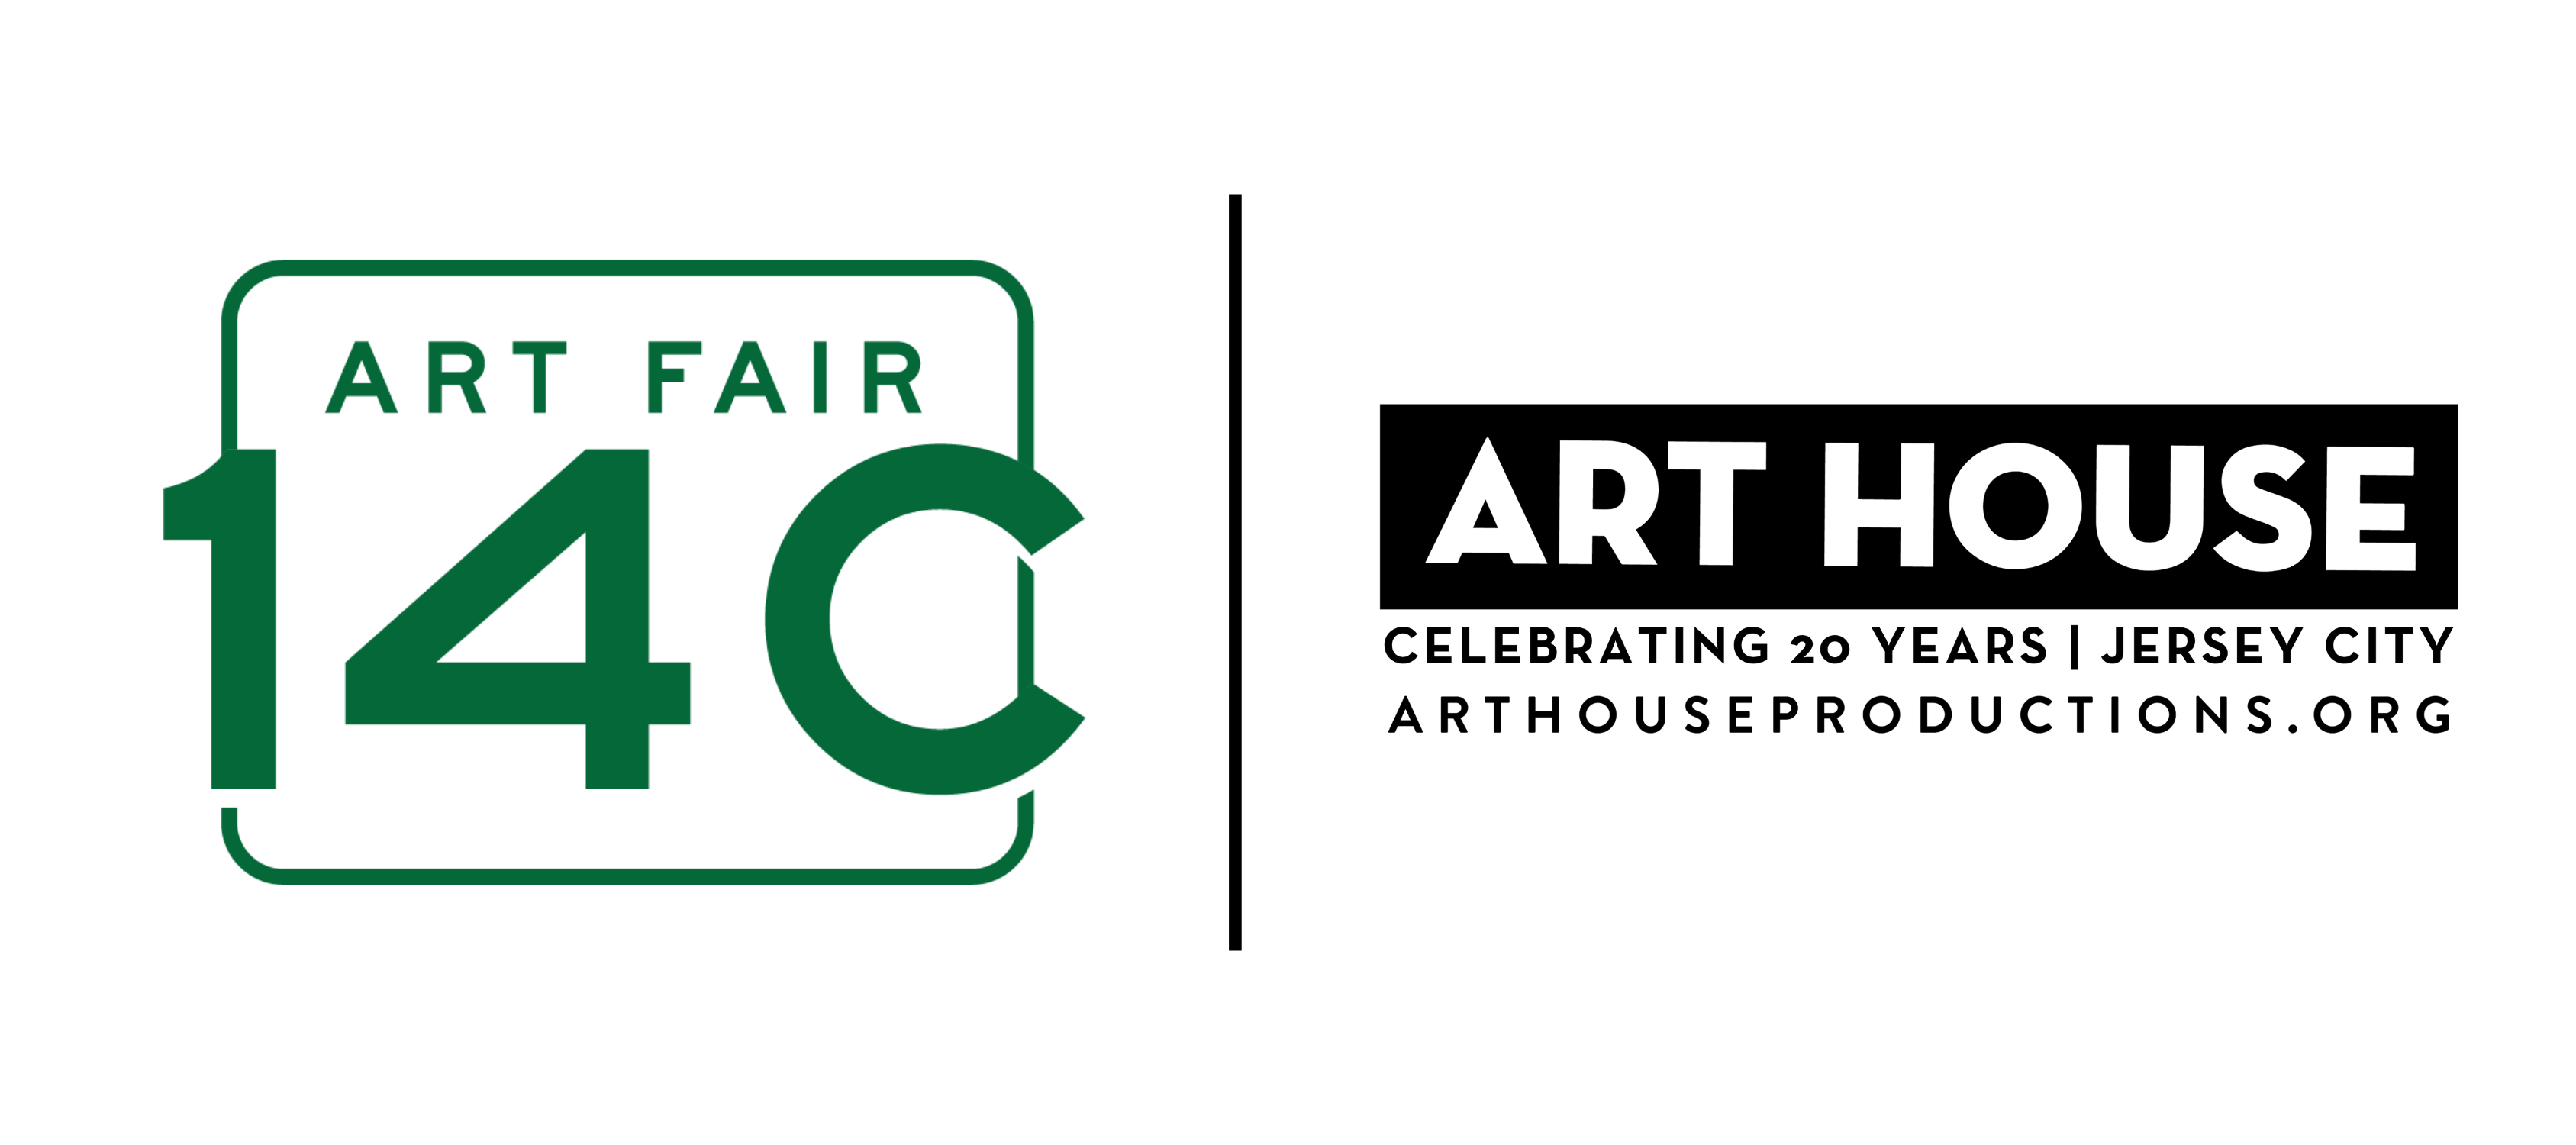 combined logo for Art Fair 14C and Art House Productions